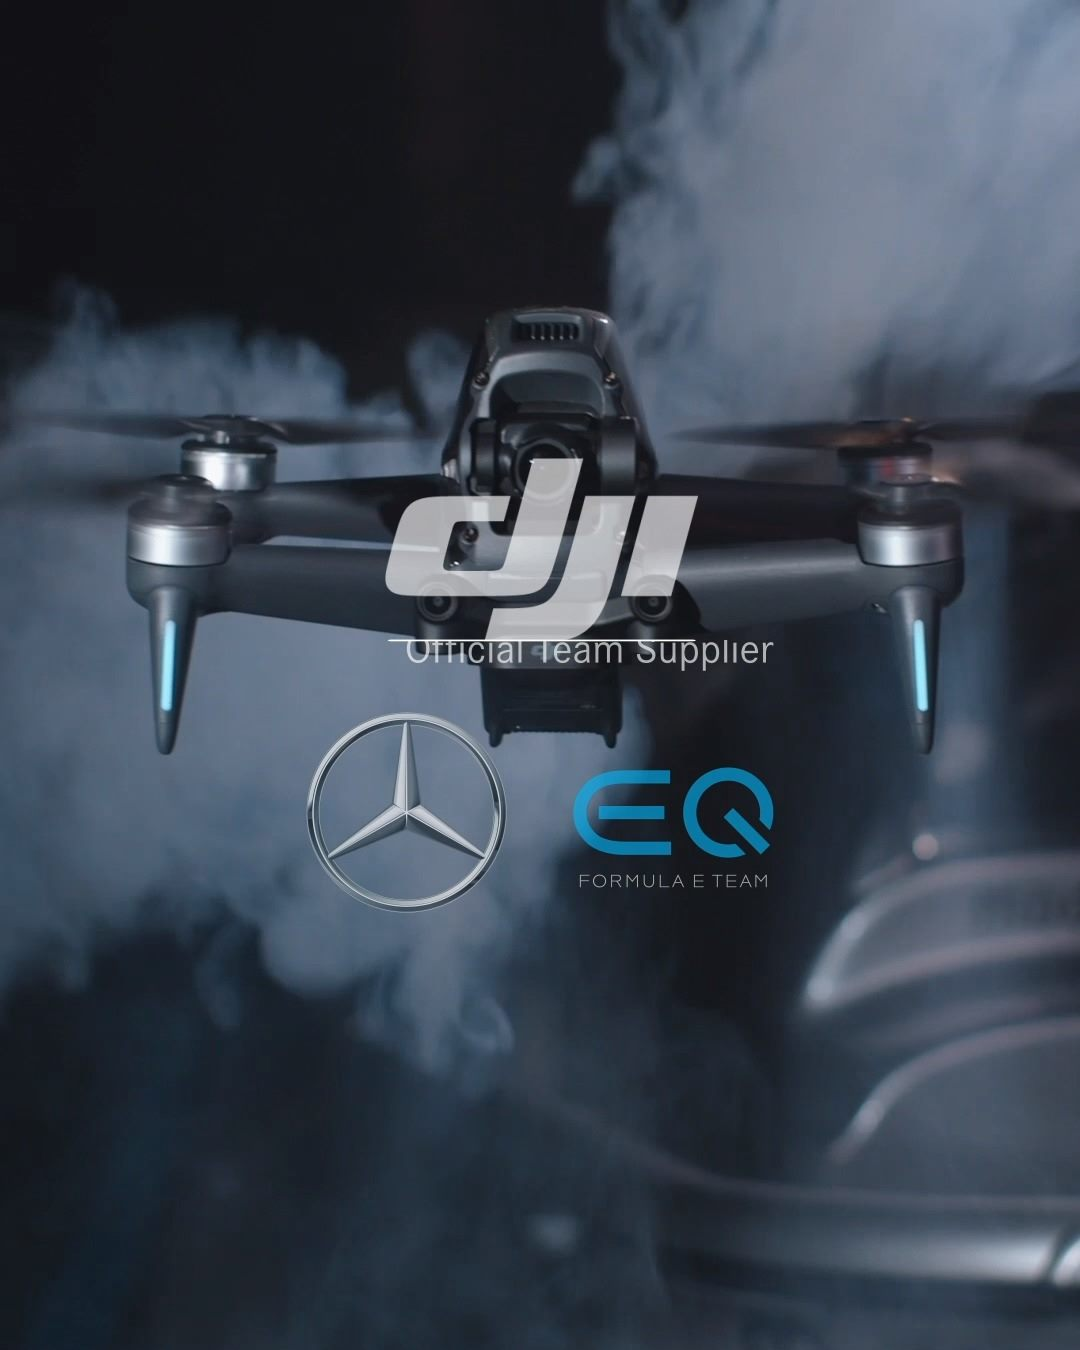 Want to see how DJI FPV holds up against Mercedes-Benz EQ Formula E Team on the track? ⚡️